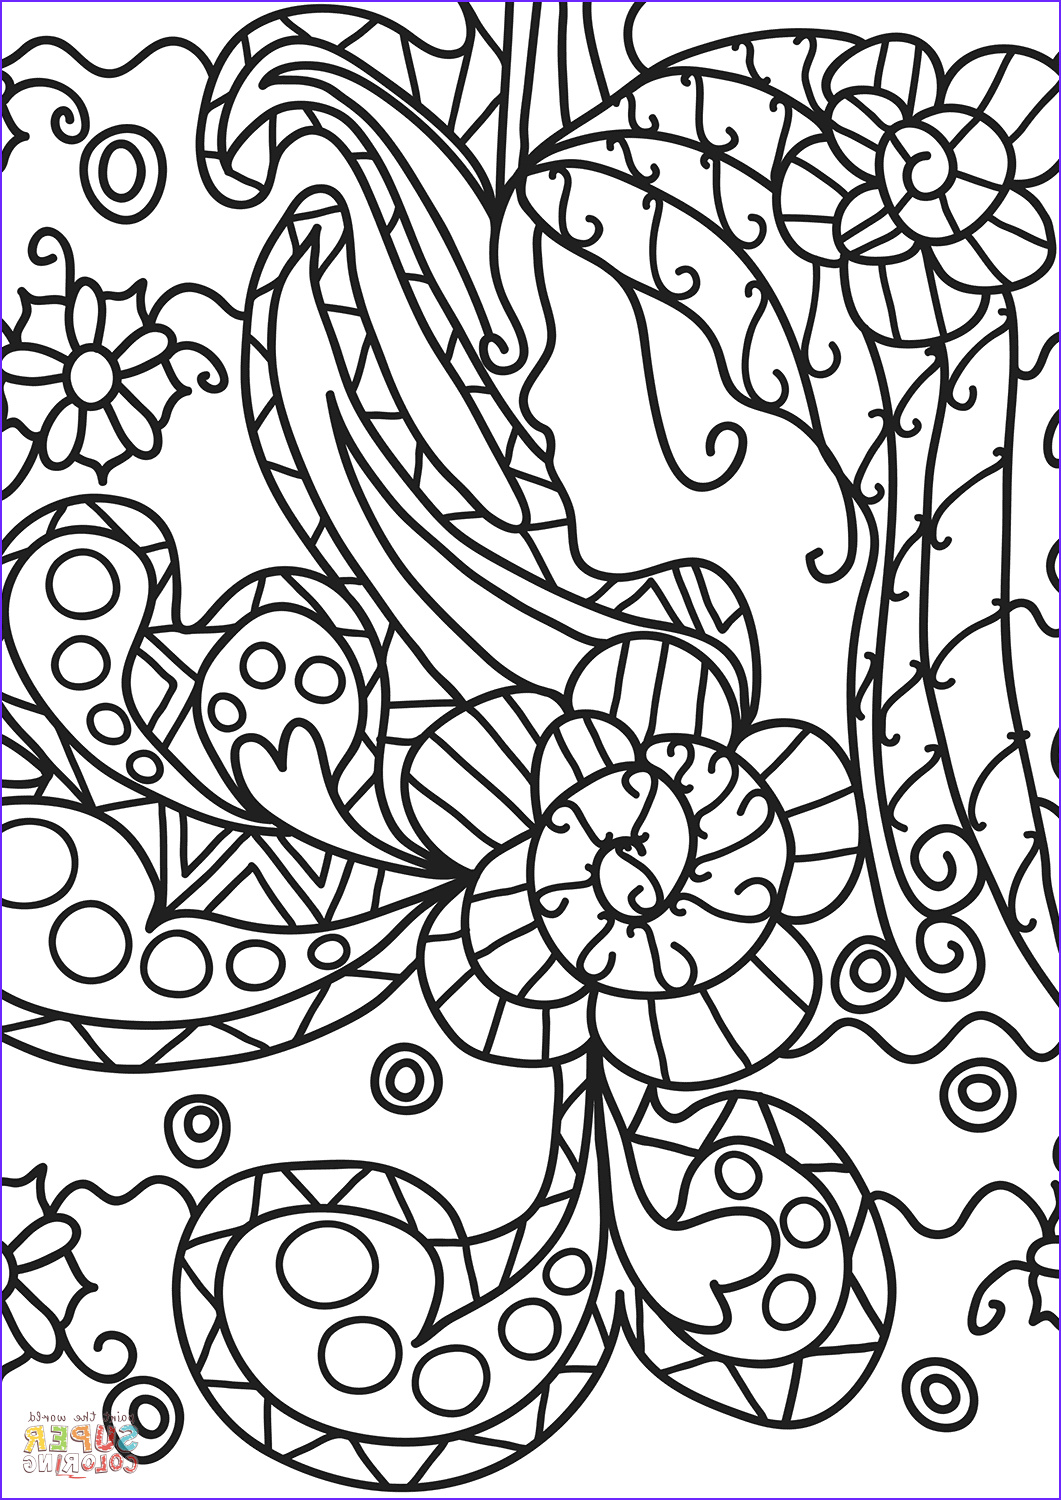 Doodle Art Coloring Pages Inspirational Images Abstract Doodle Coloring Page